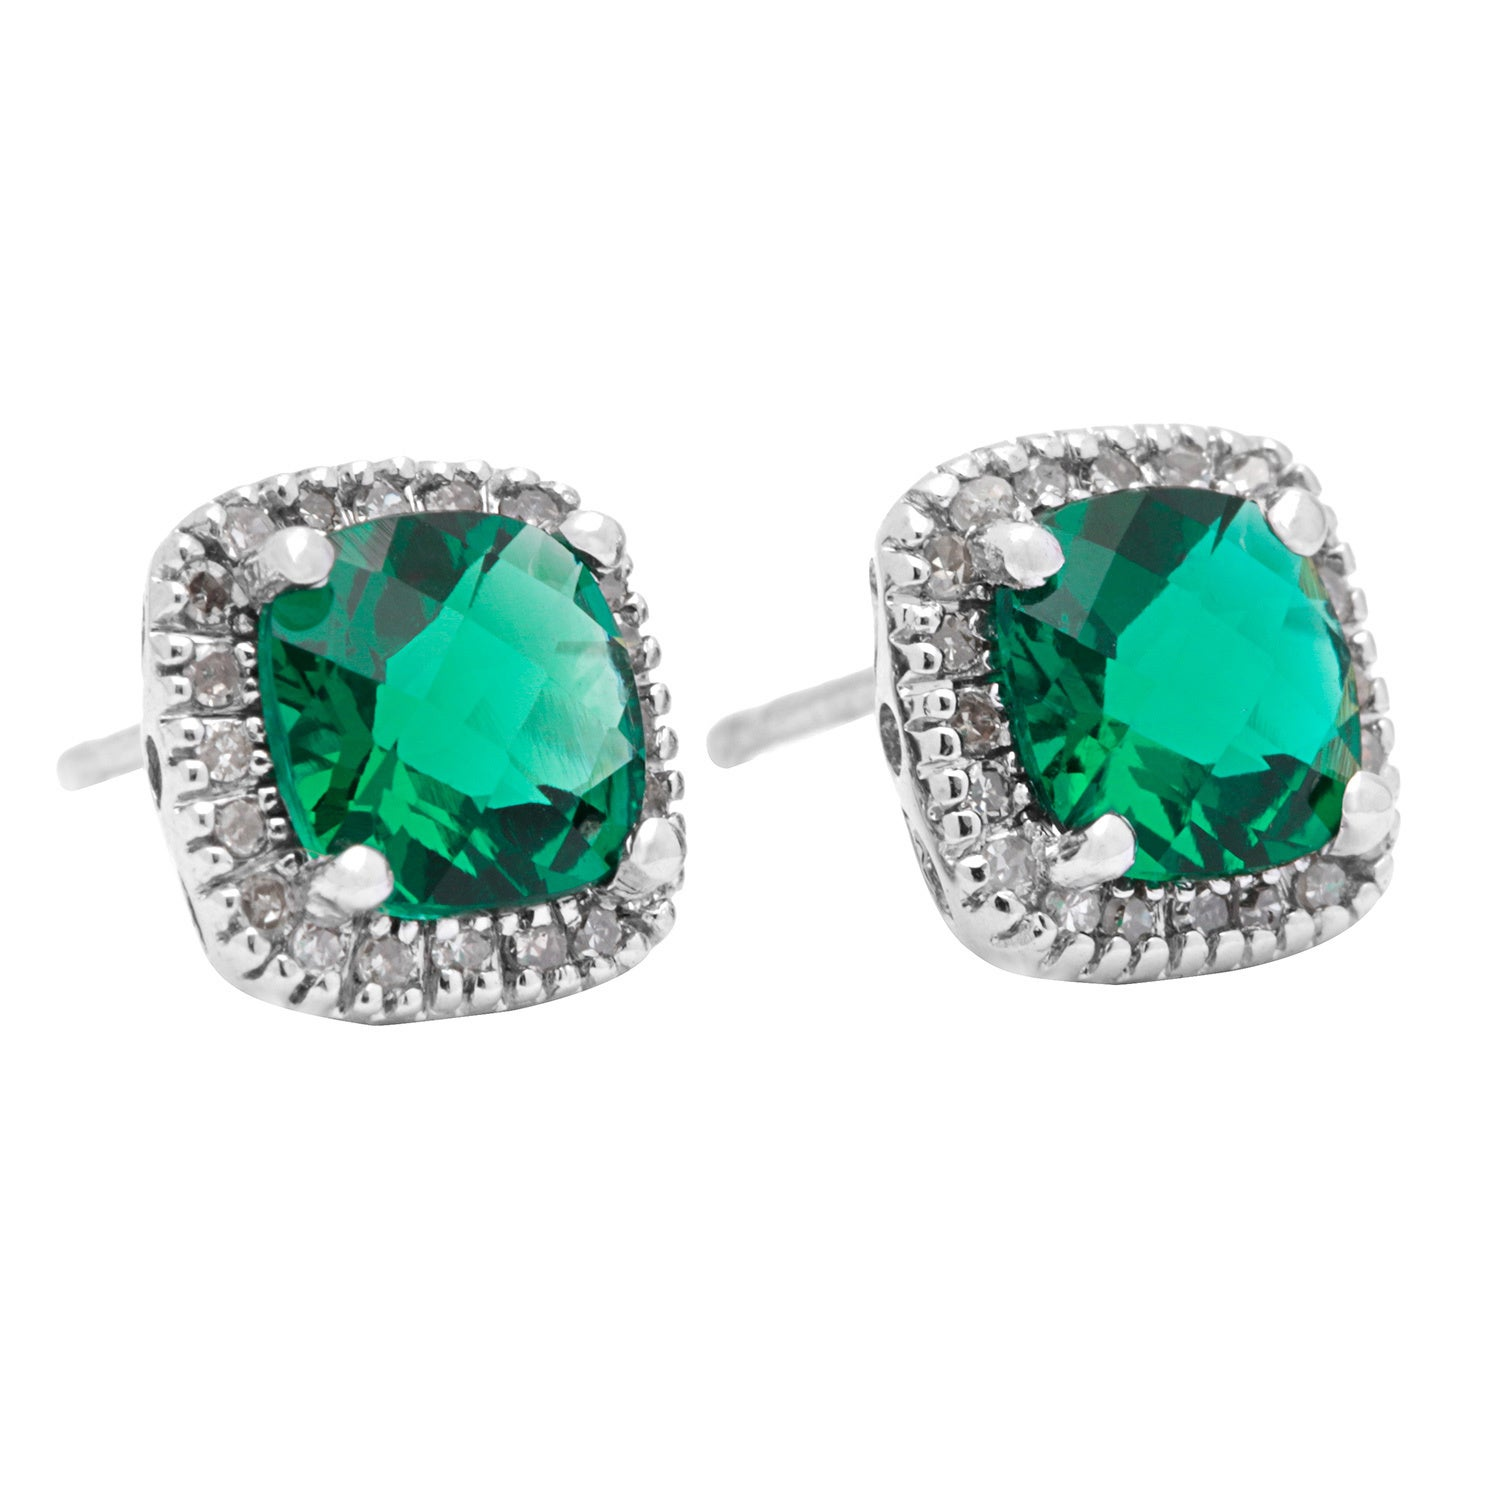 category of ring halo page brilliant kyleva emerald product cut archives jewellery cushion dress rionore